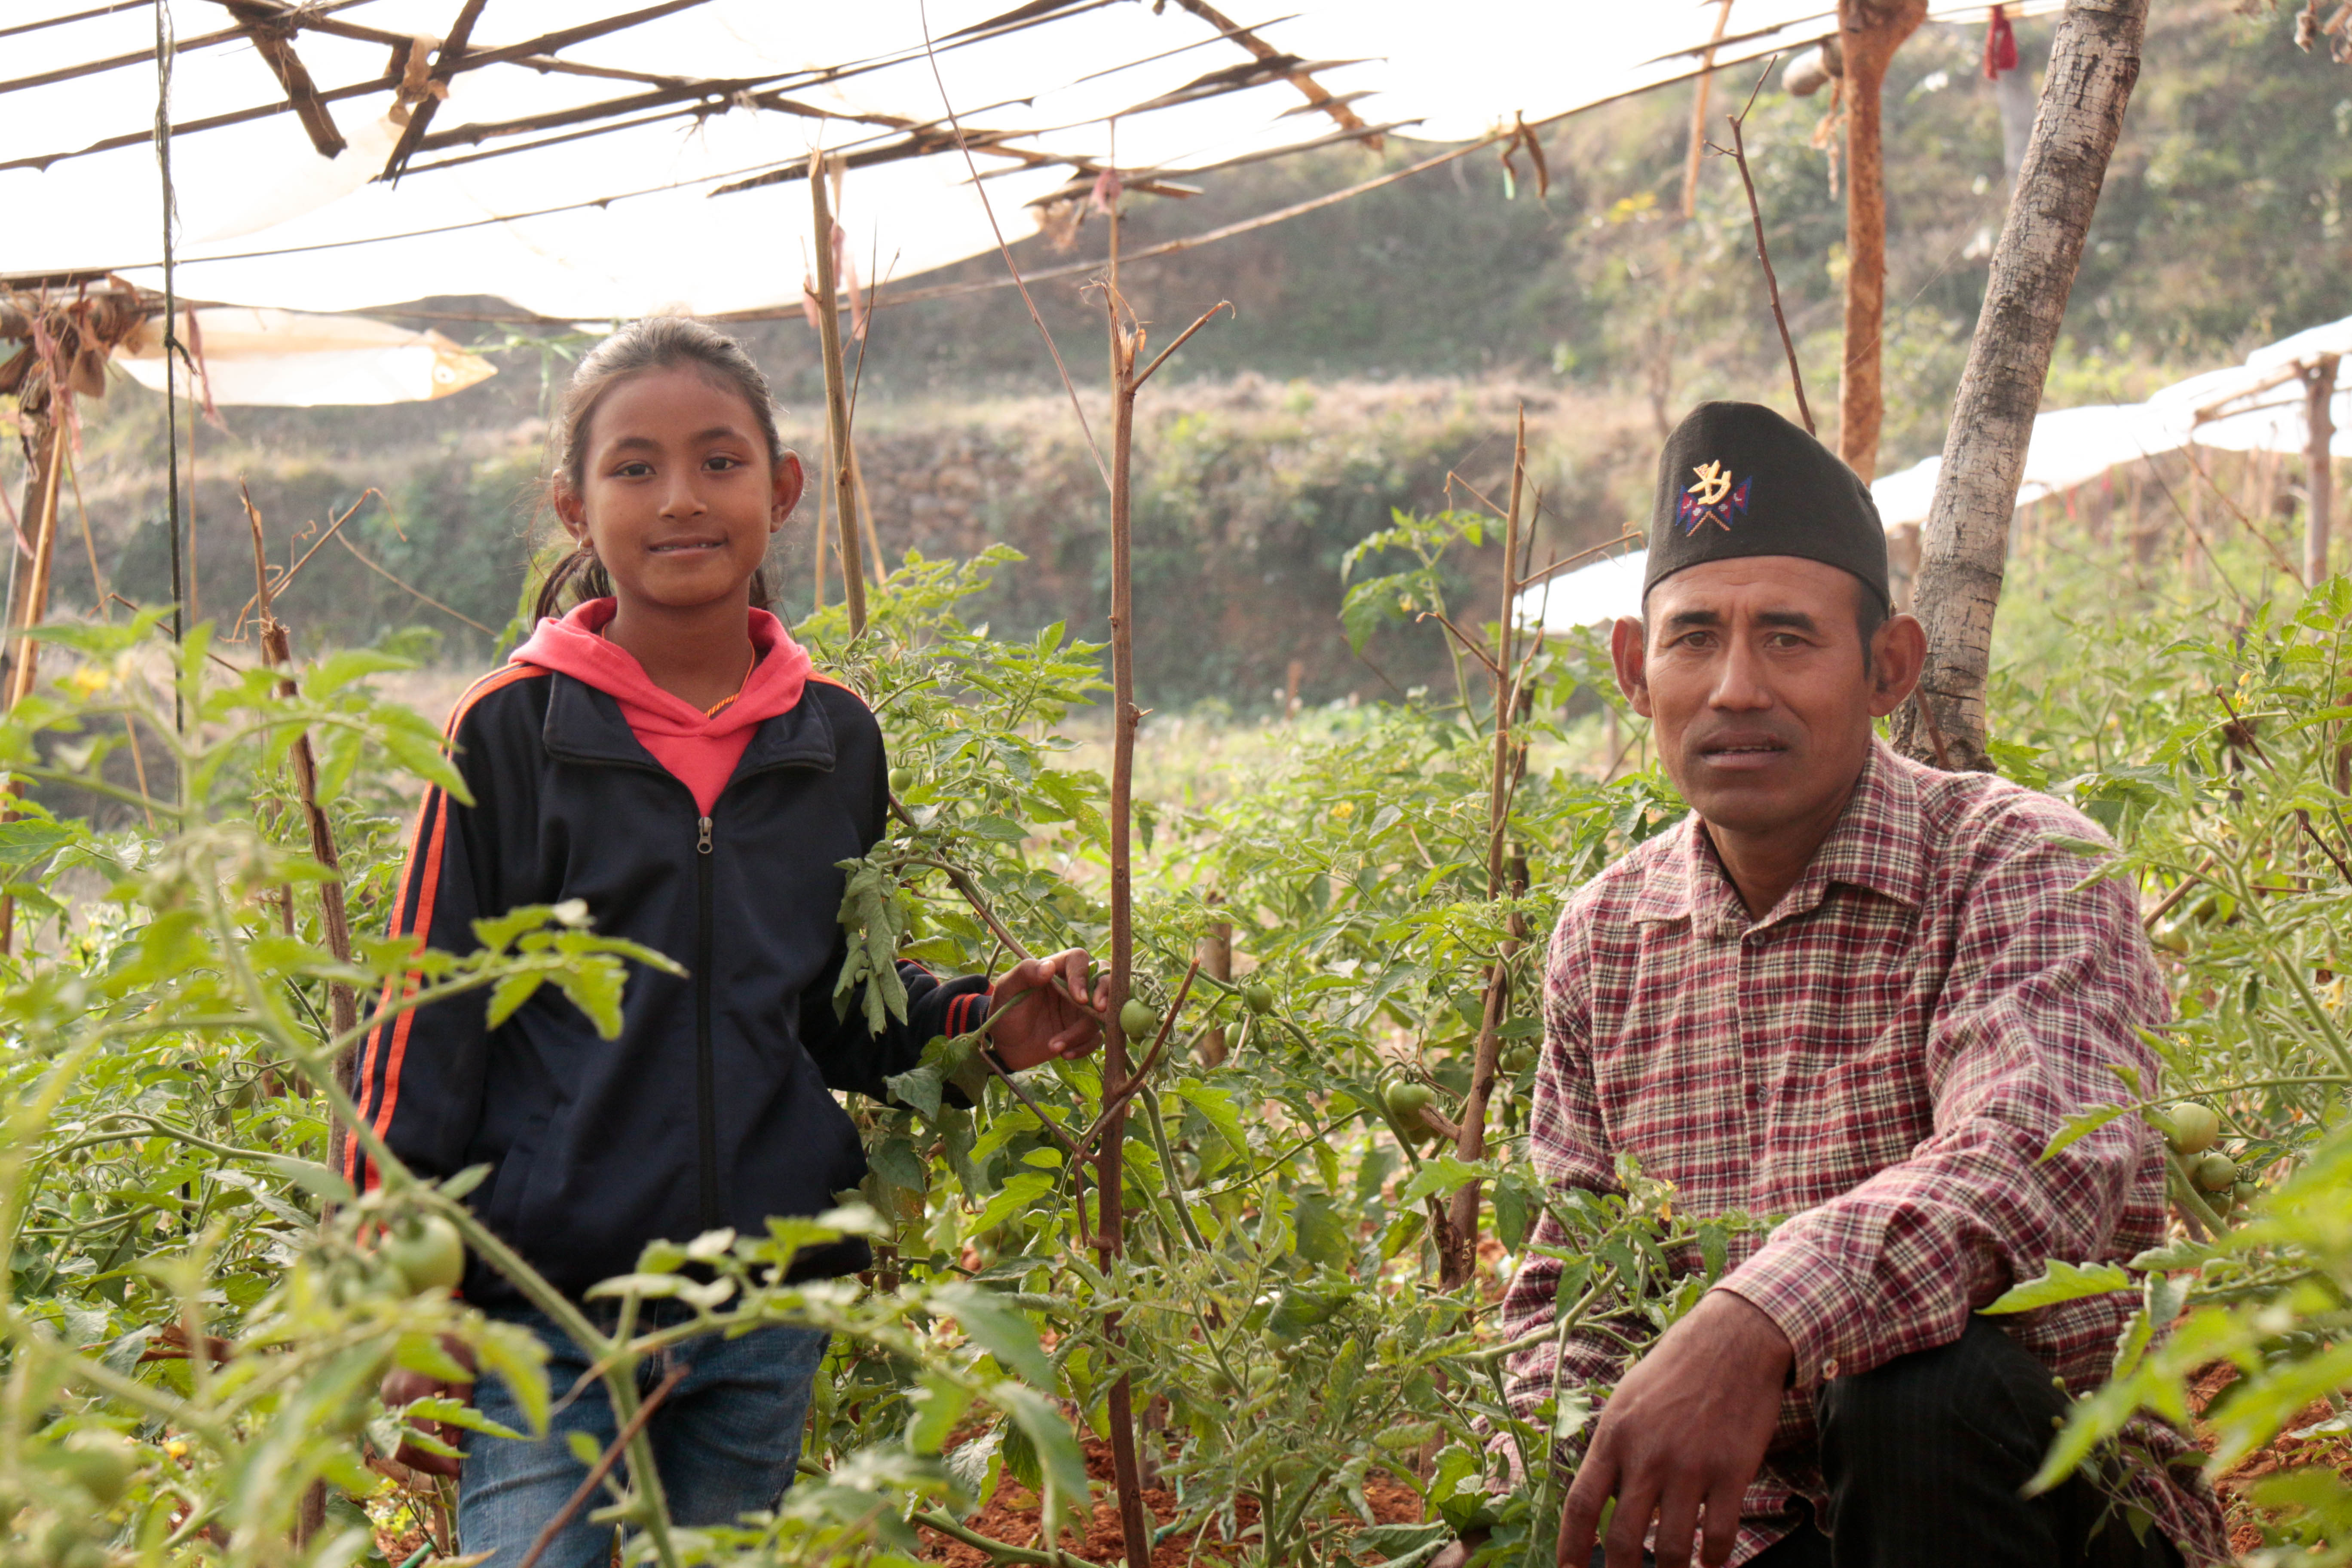 Hisila and her father in their farm